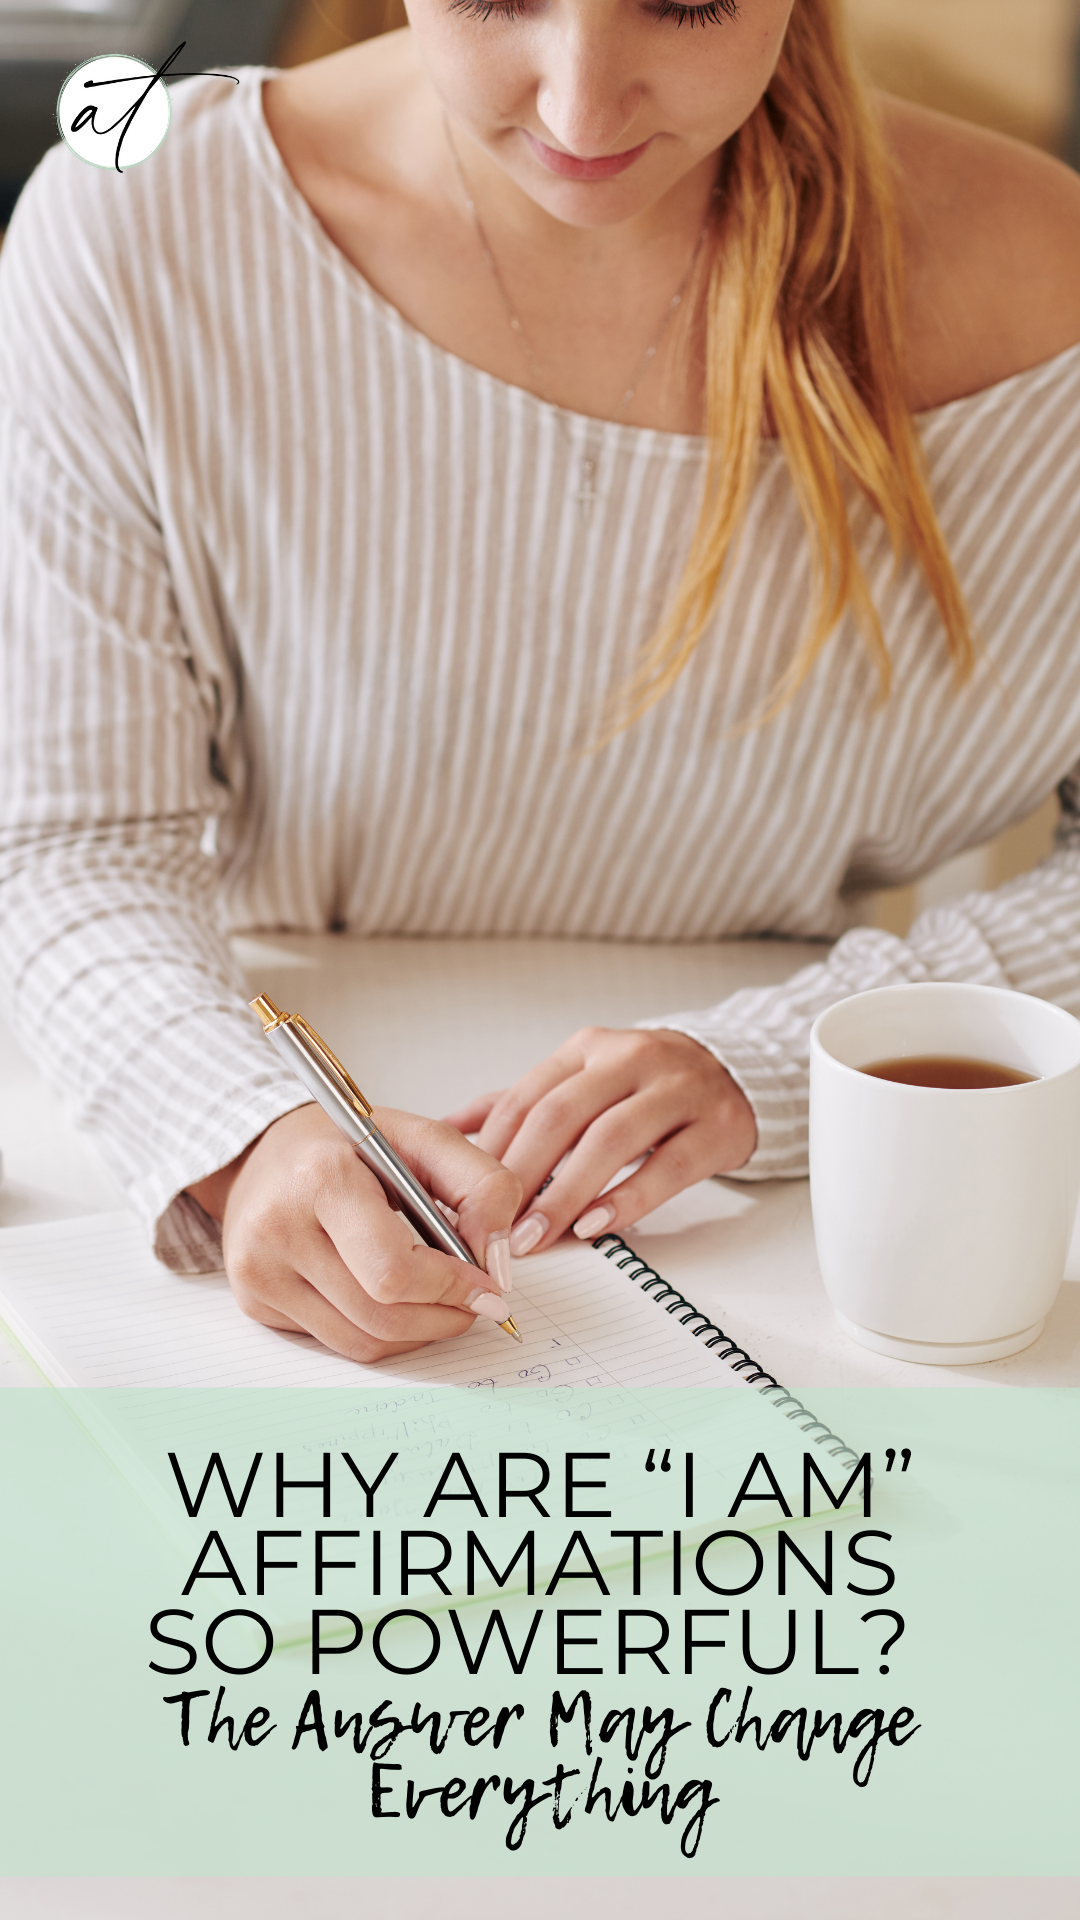 I am affirmations when used correctly can change everything!